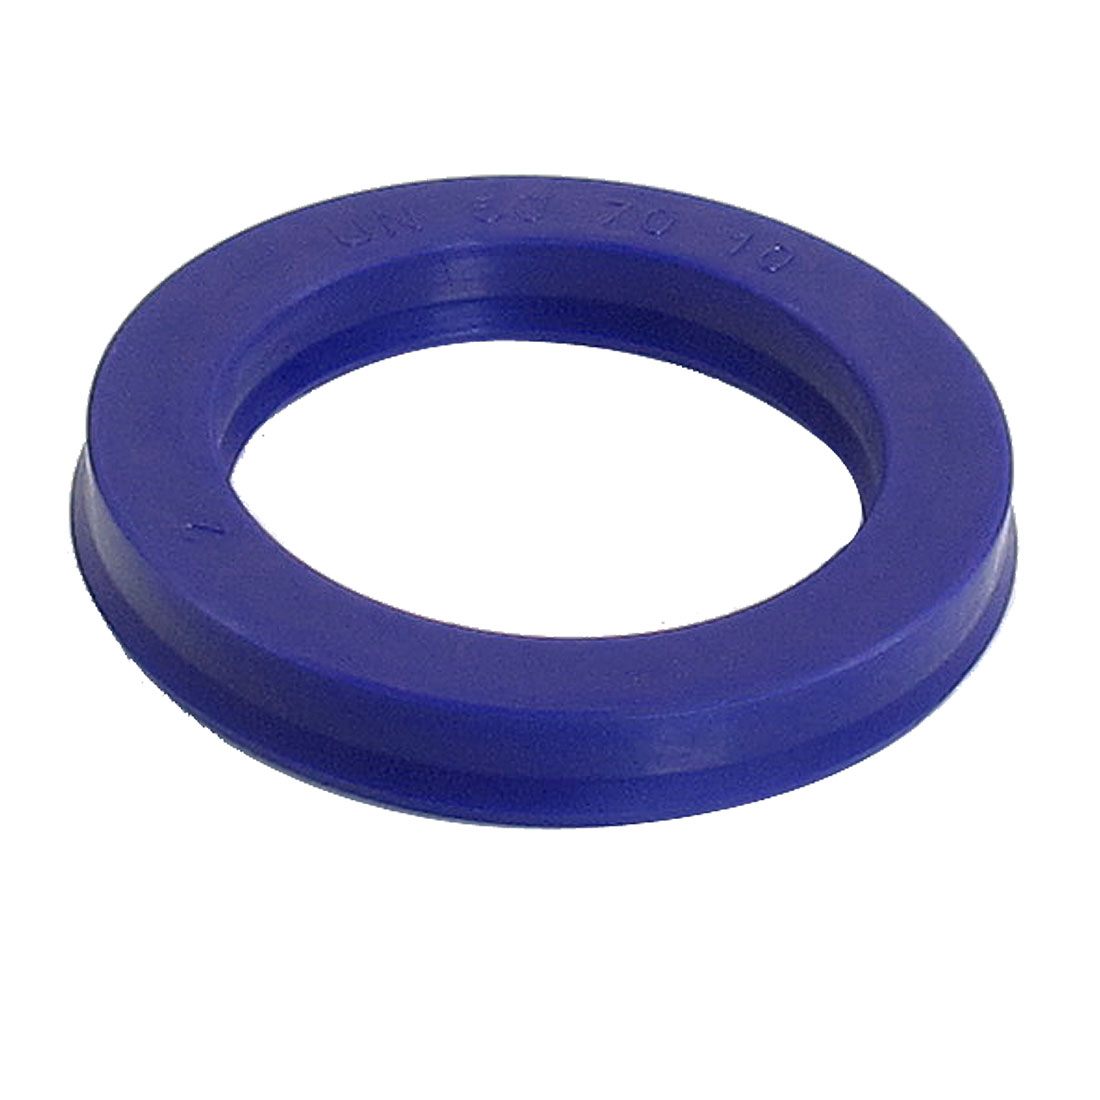 Blue PU 50mm x 70mm x 10mm Double Lip Sealing Cushion Dust Seal Ring